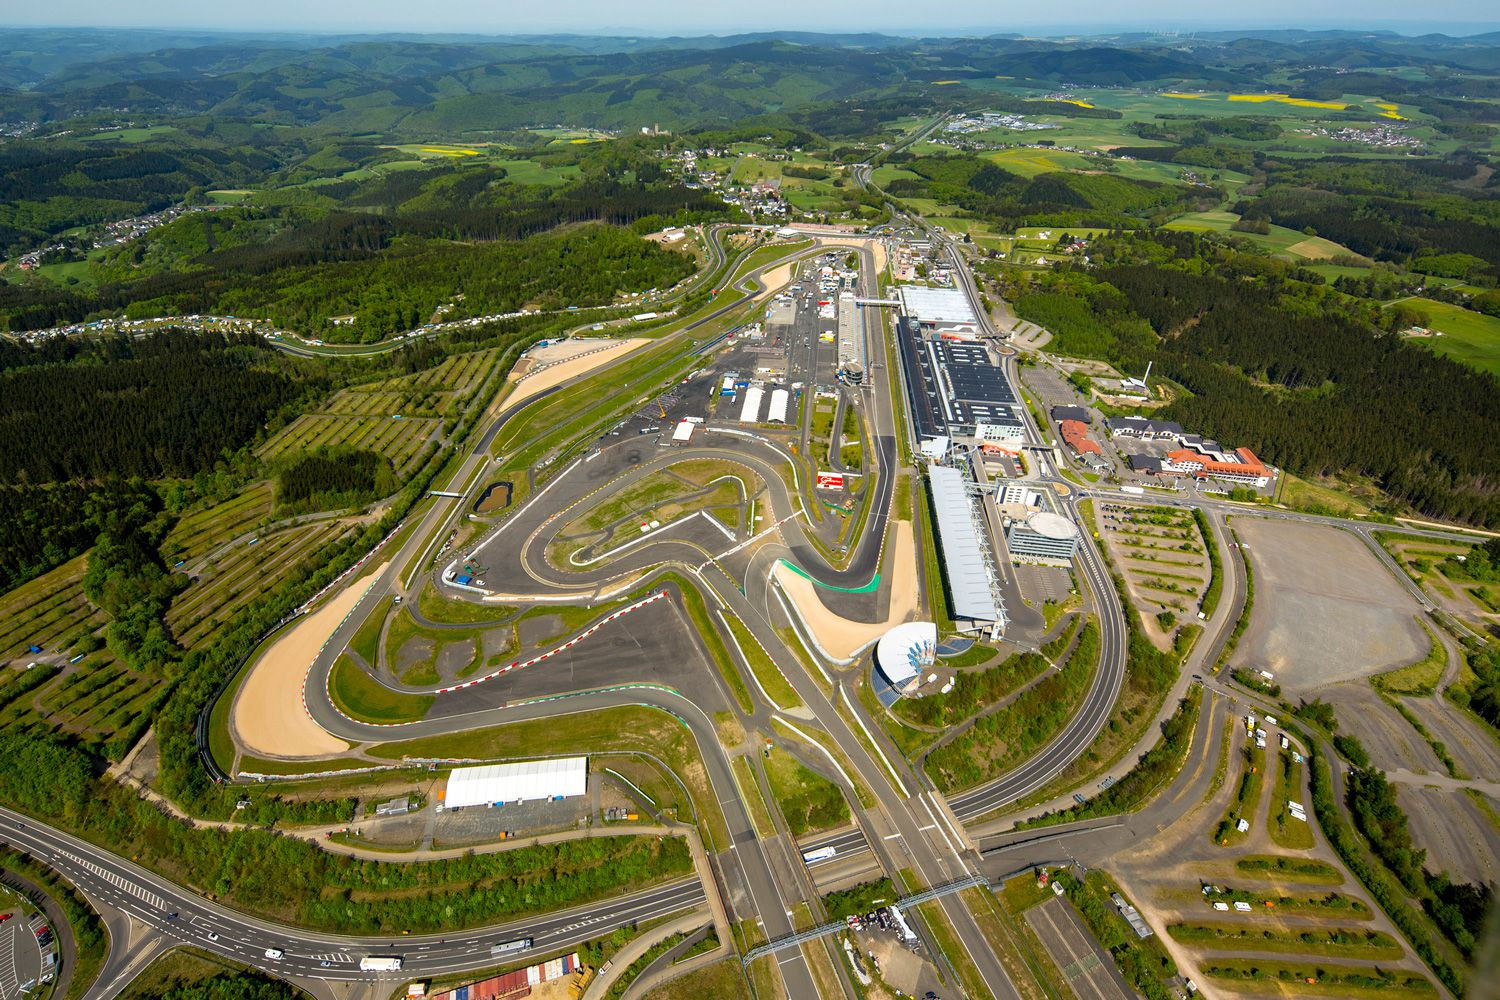 Go Kart Nürnberg How To Drive The Nürburgring The World 39s Most Notorious